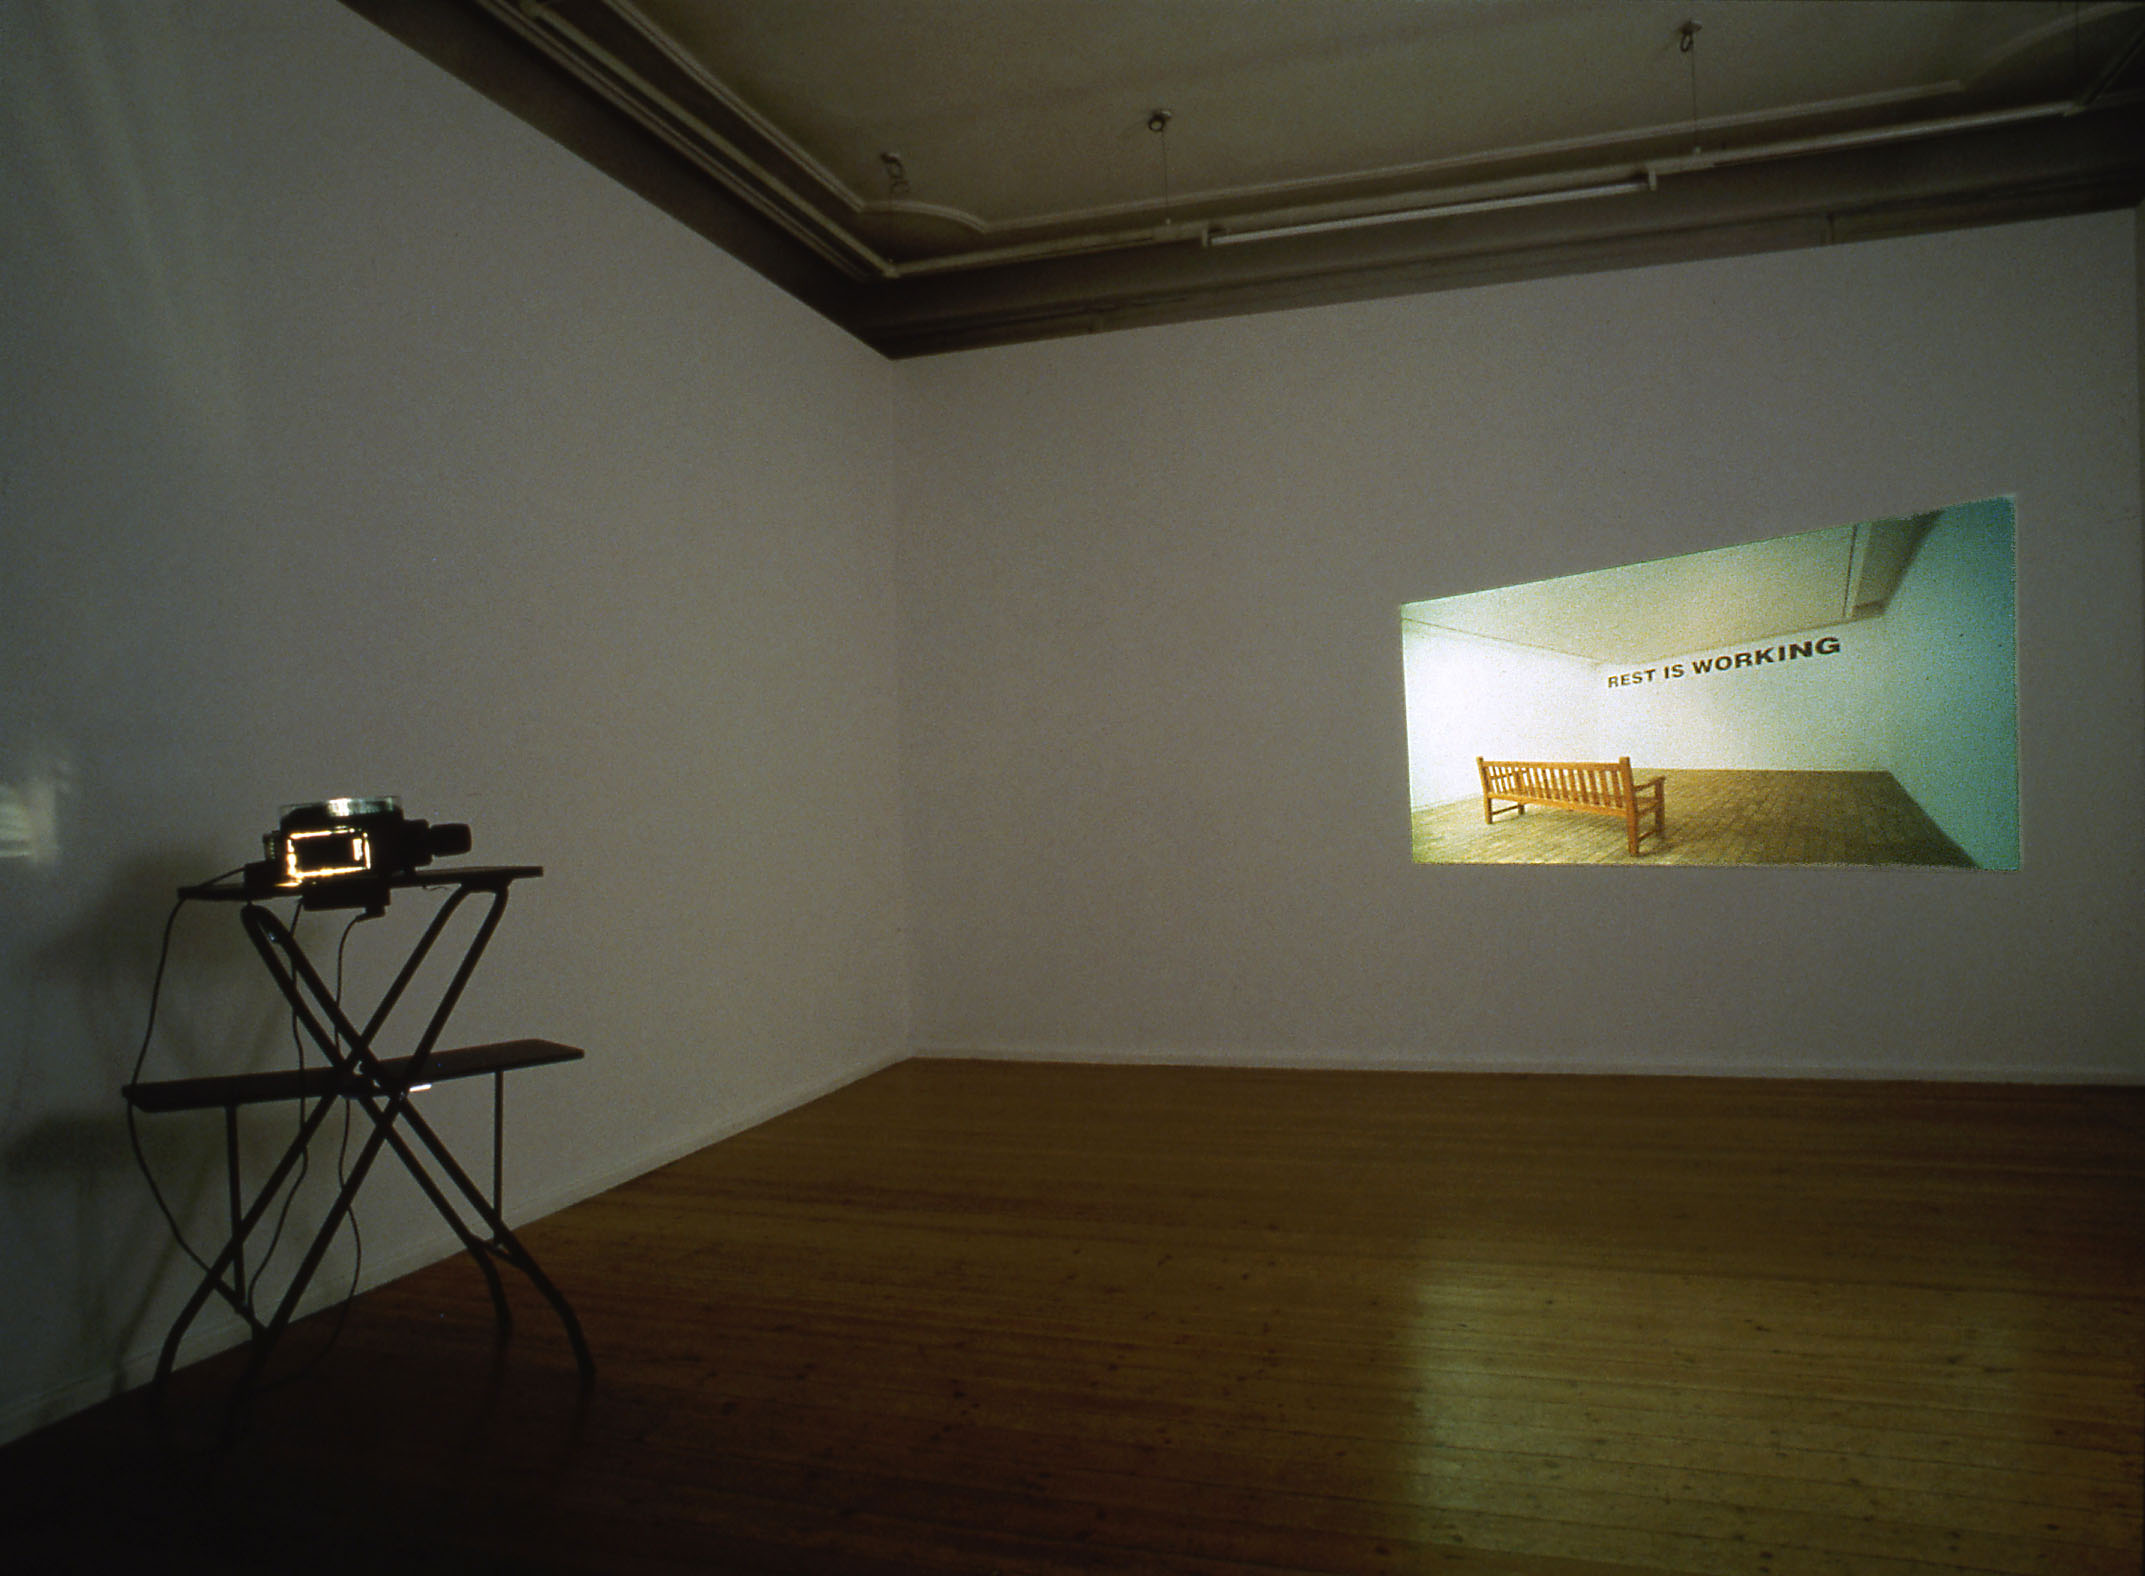 REST IS WORKING Art in Ruins 1992 Projector, stand, projection on wall CONCEPTUAL DEBT daadgalerie Berlin